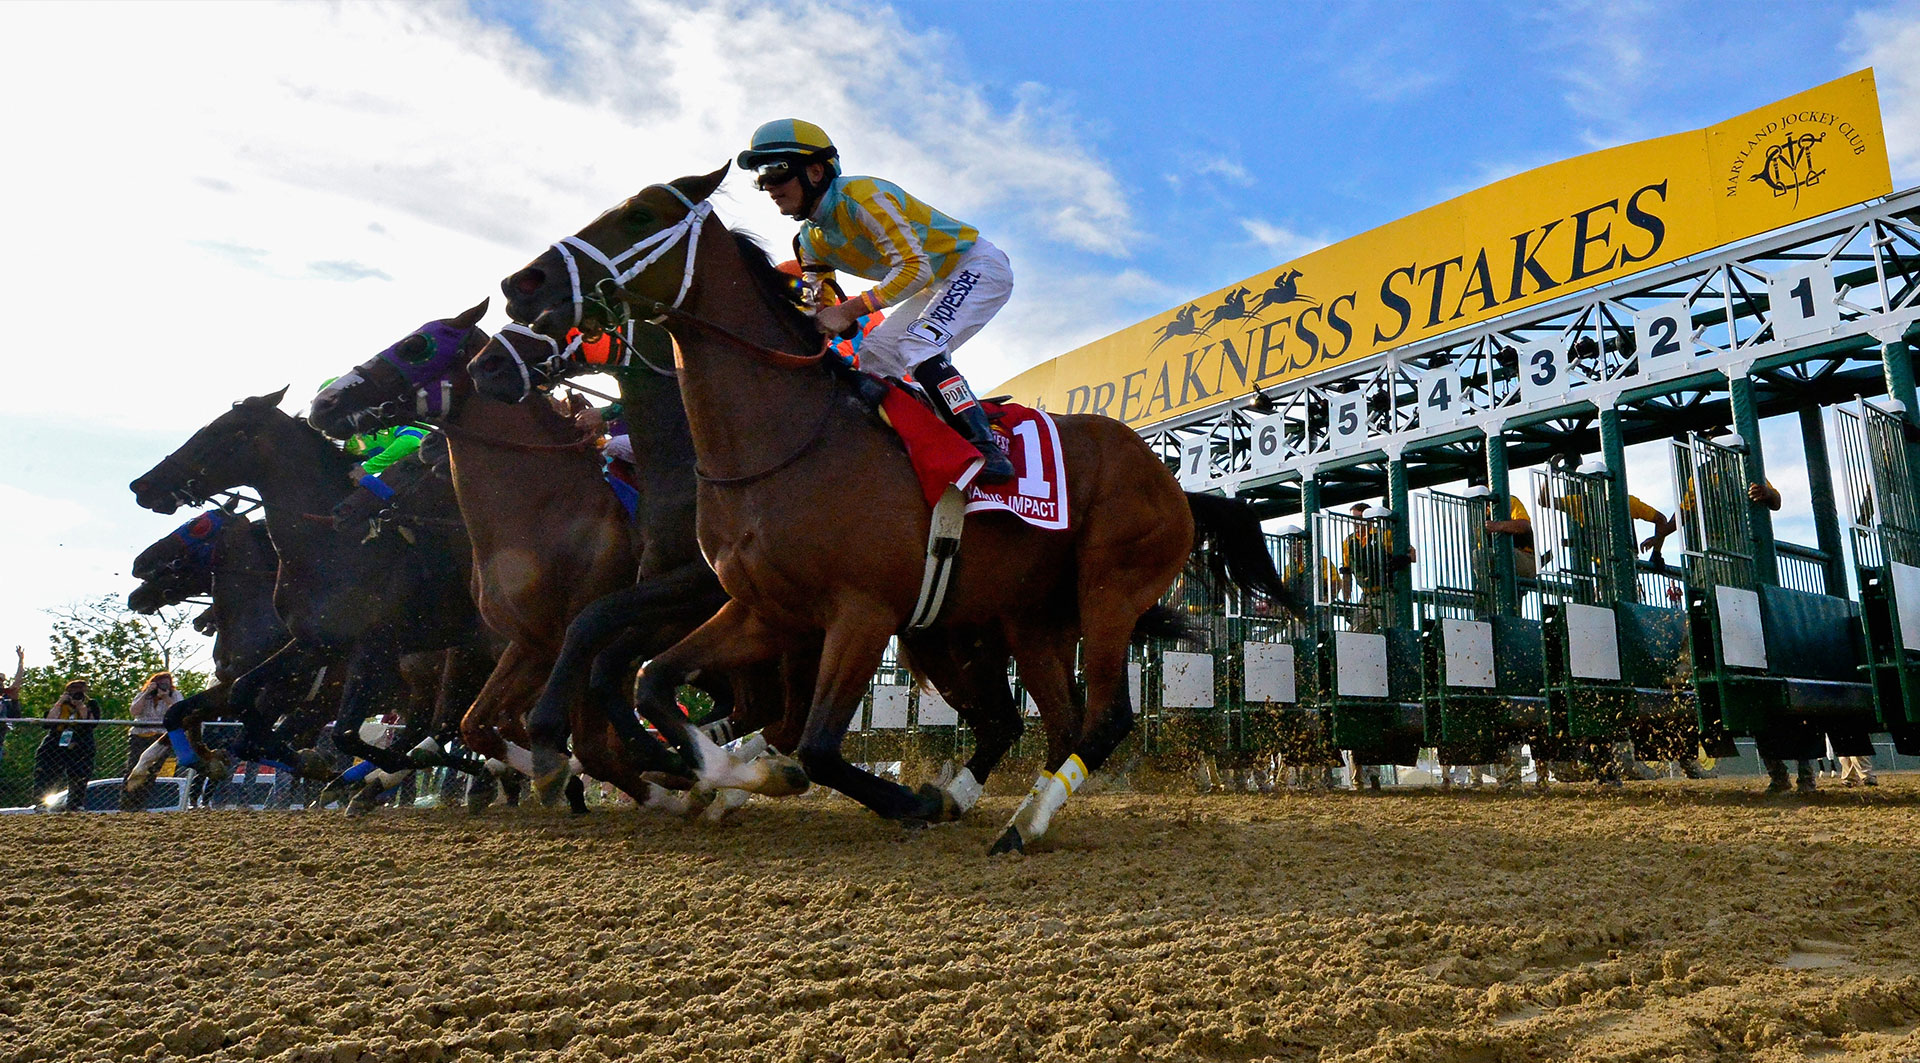 2018 preakness stakes horse racing